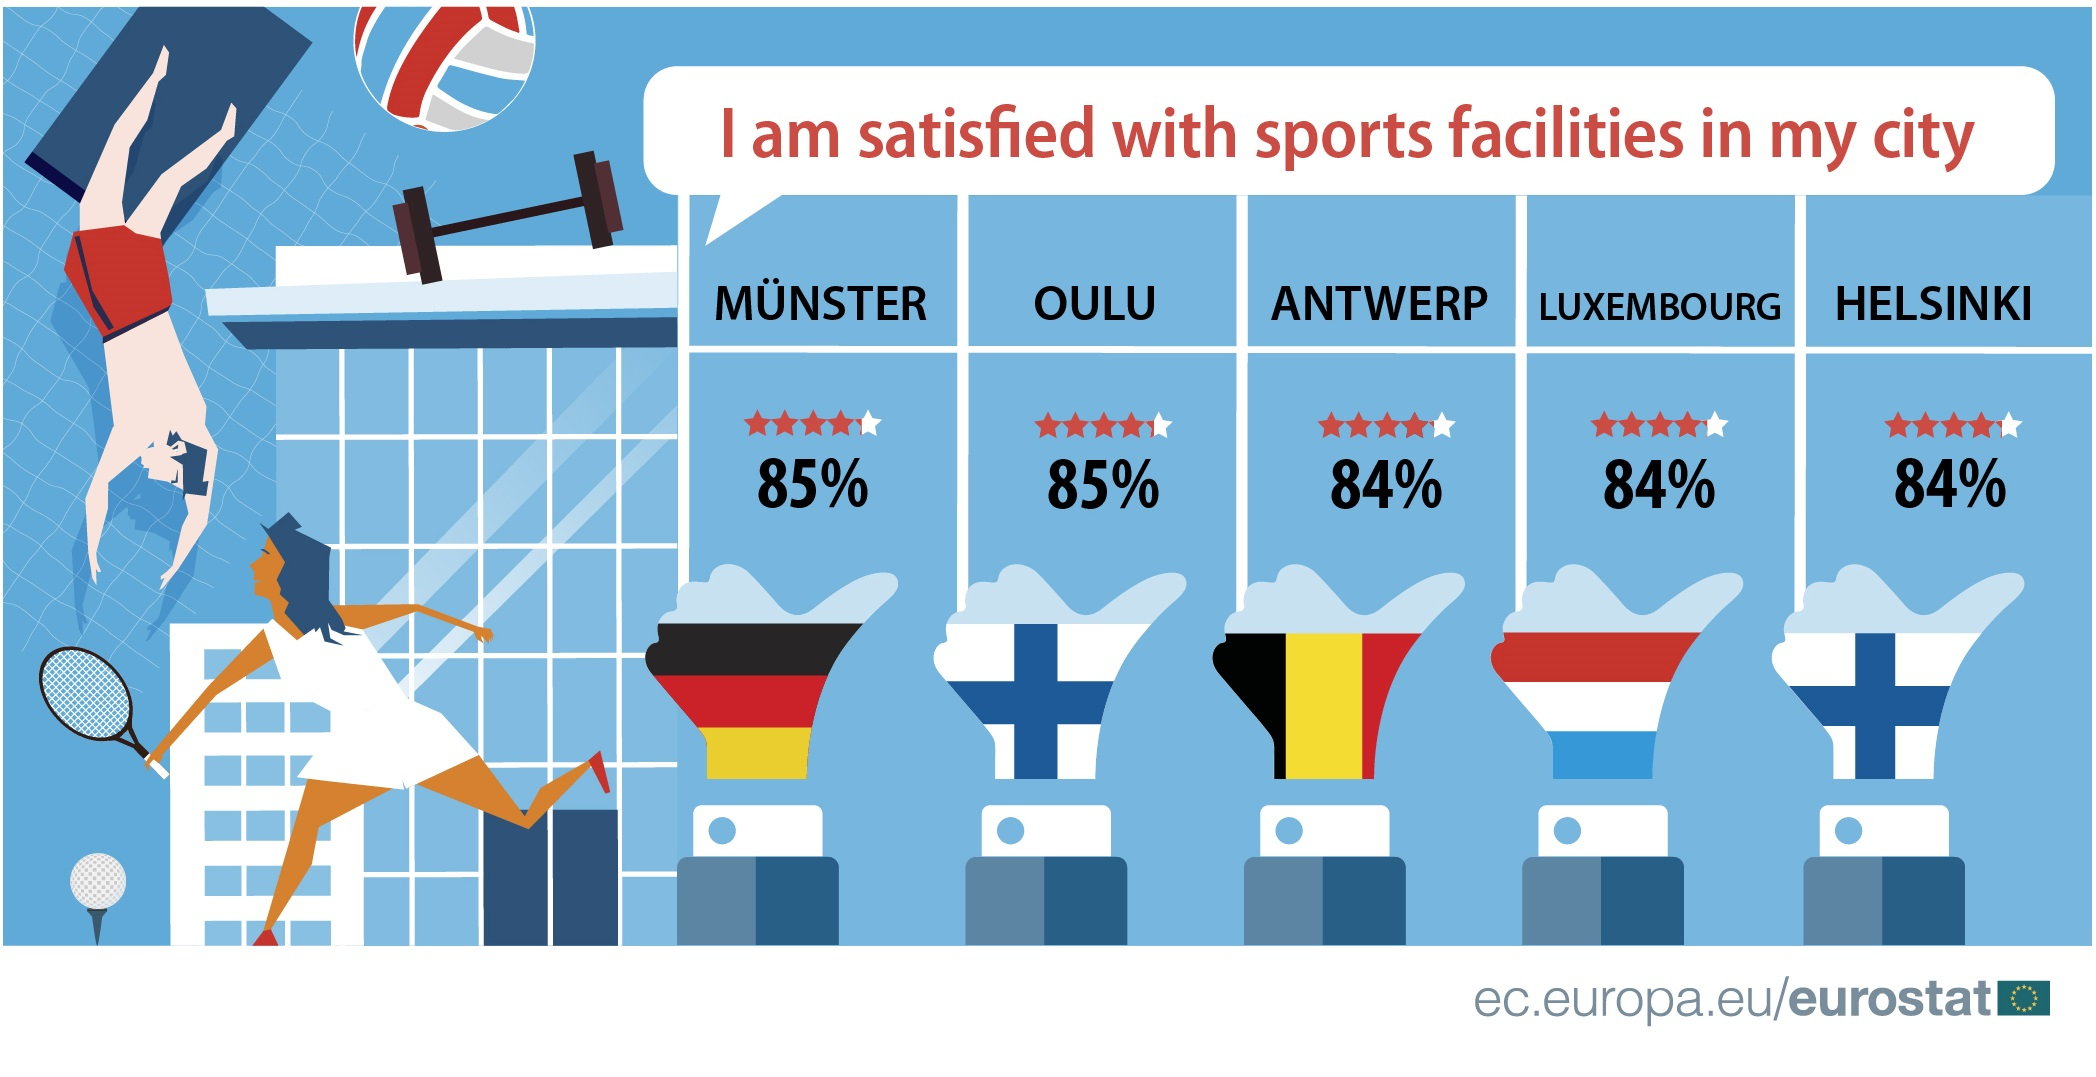 Satisfaction with sports facilities